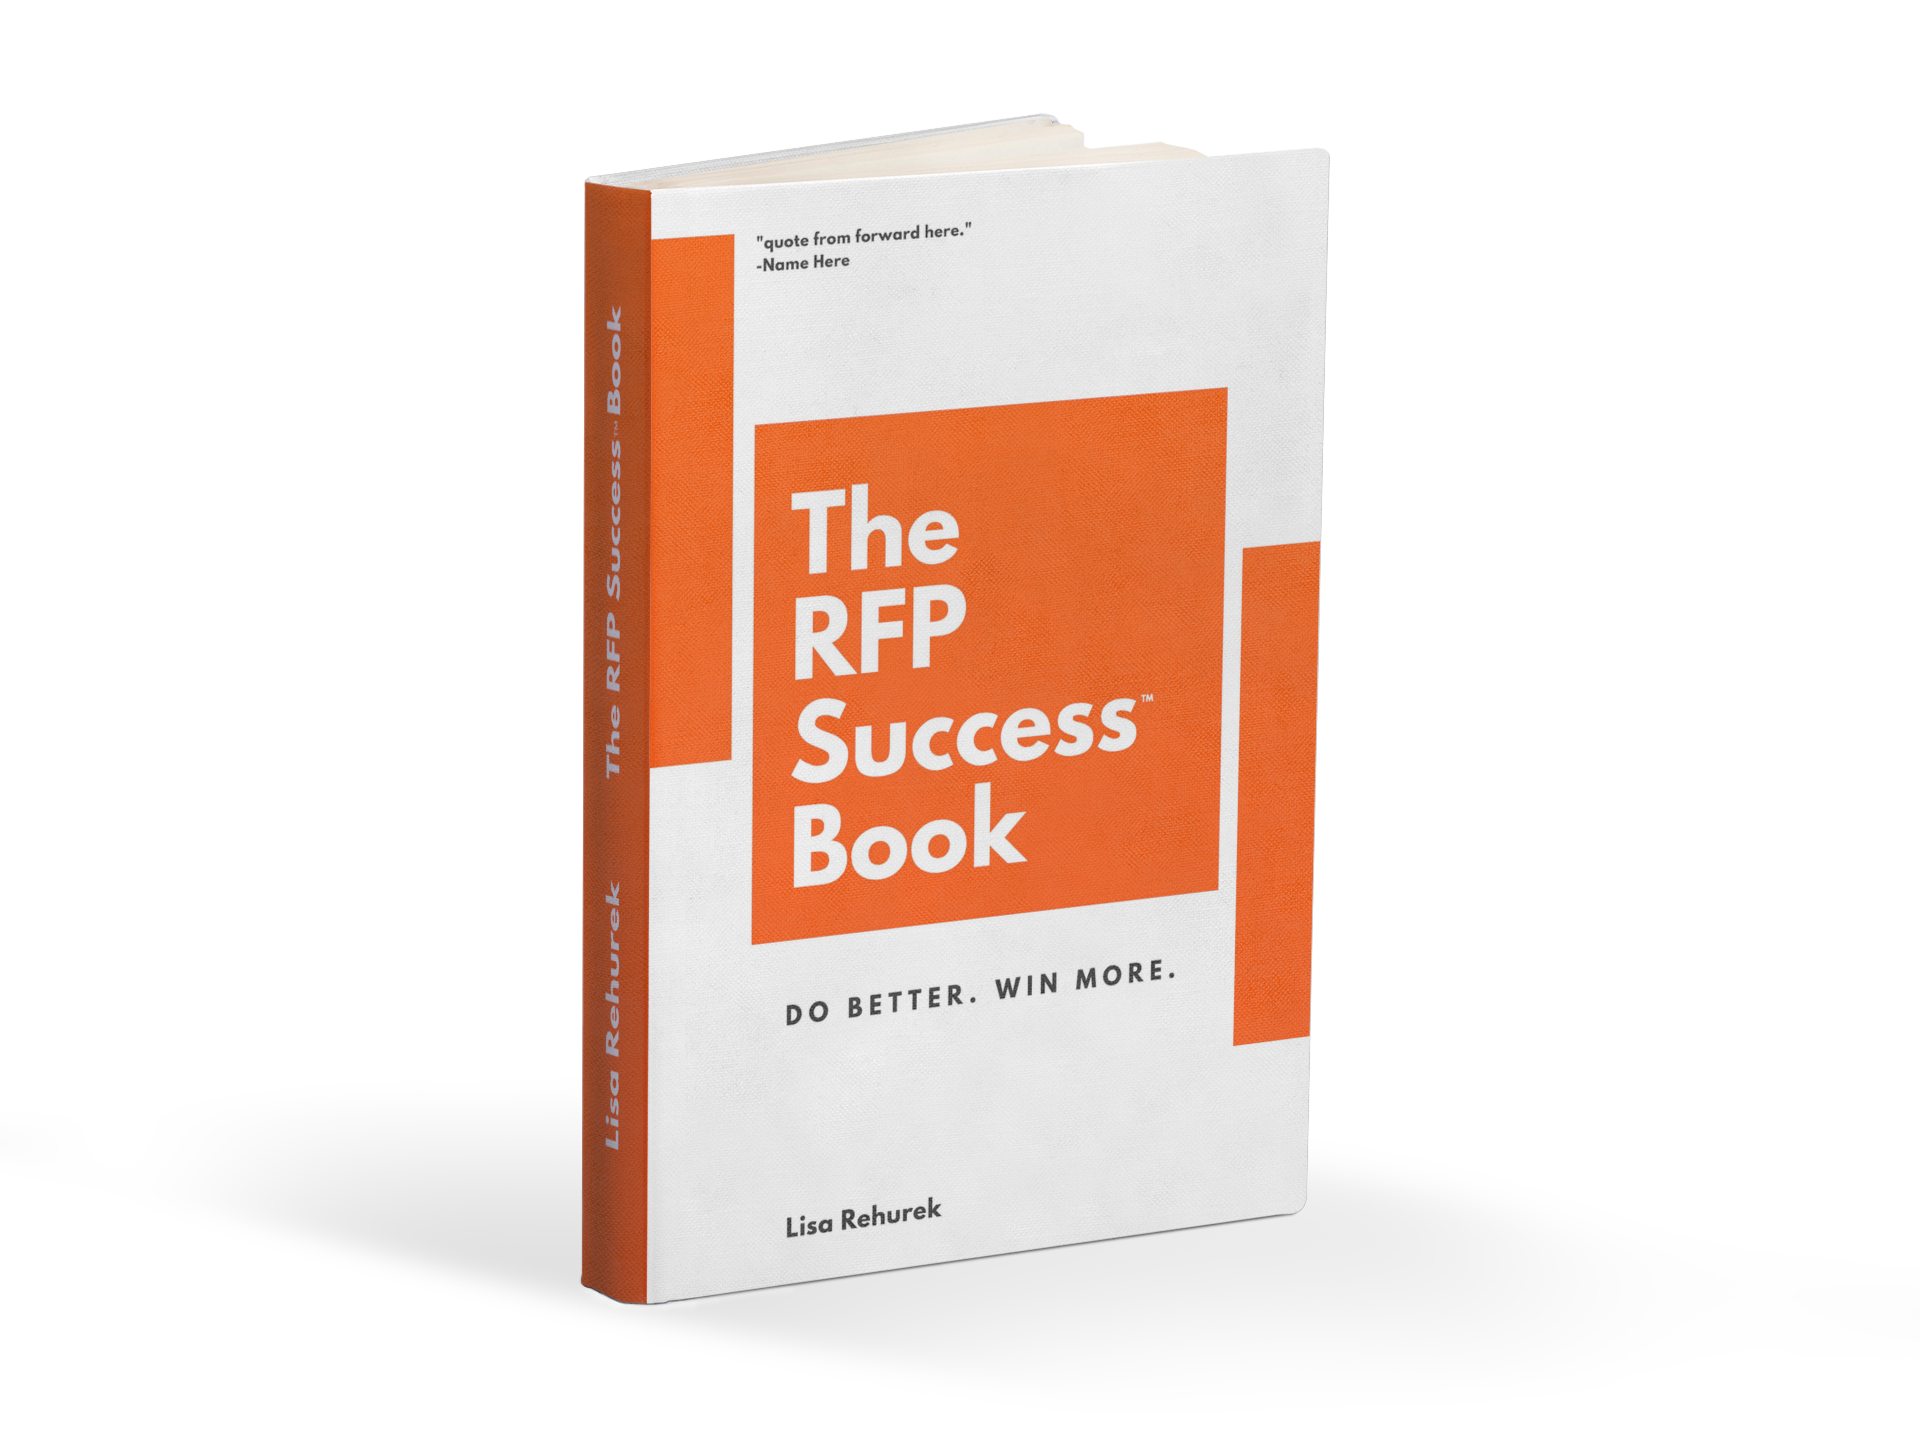 The RFP Success Book